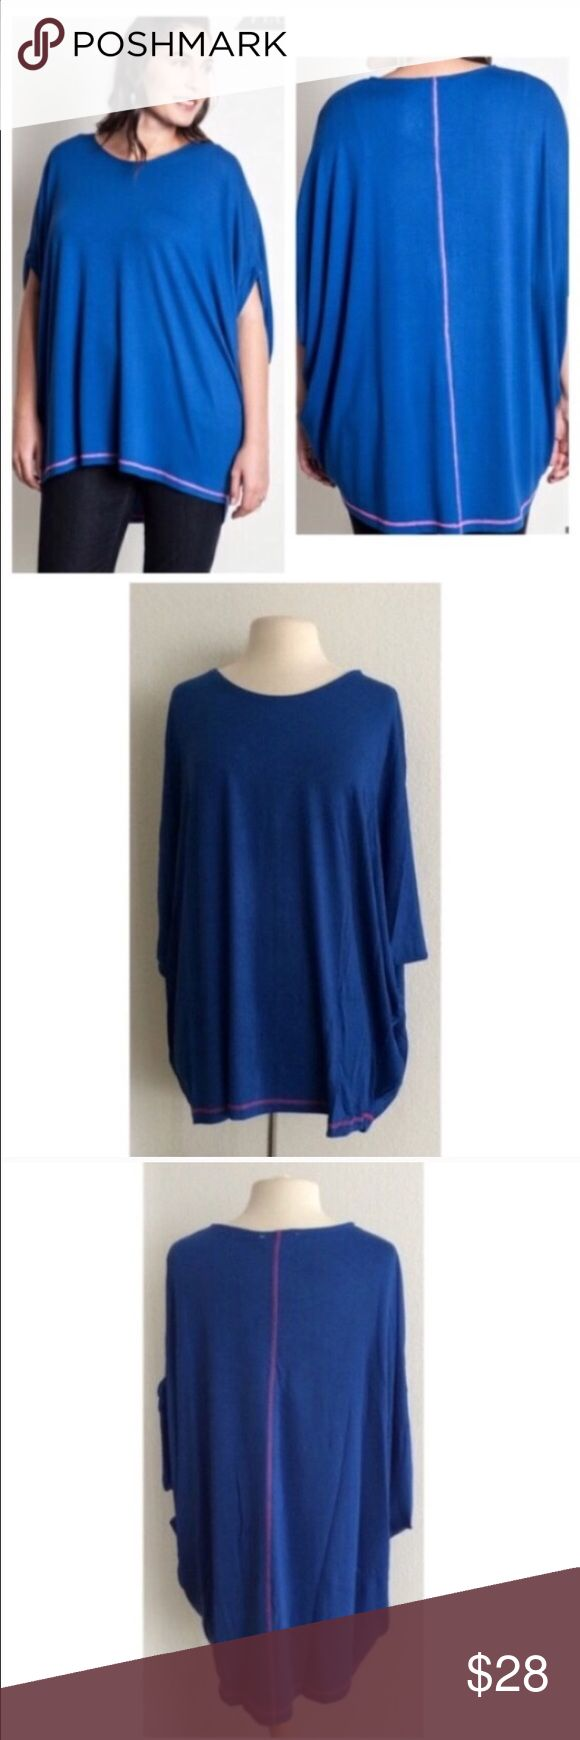 "*(Plus) Blue batwing top Blue batwing top  Length- approx 32""  Materials- 65% cotton/ 35% polyester. This is a pretty thick top and it is extremely versatile. It can be dressed up or dressed down. Runs slightly large.  Availability- XL•1x • 2•2 ⭐️This item is brand new from manufacturer without tags.  🚫NO TRADES 💲Price is firm unless bundled 💰Ask about bundle discounts Tops"